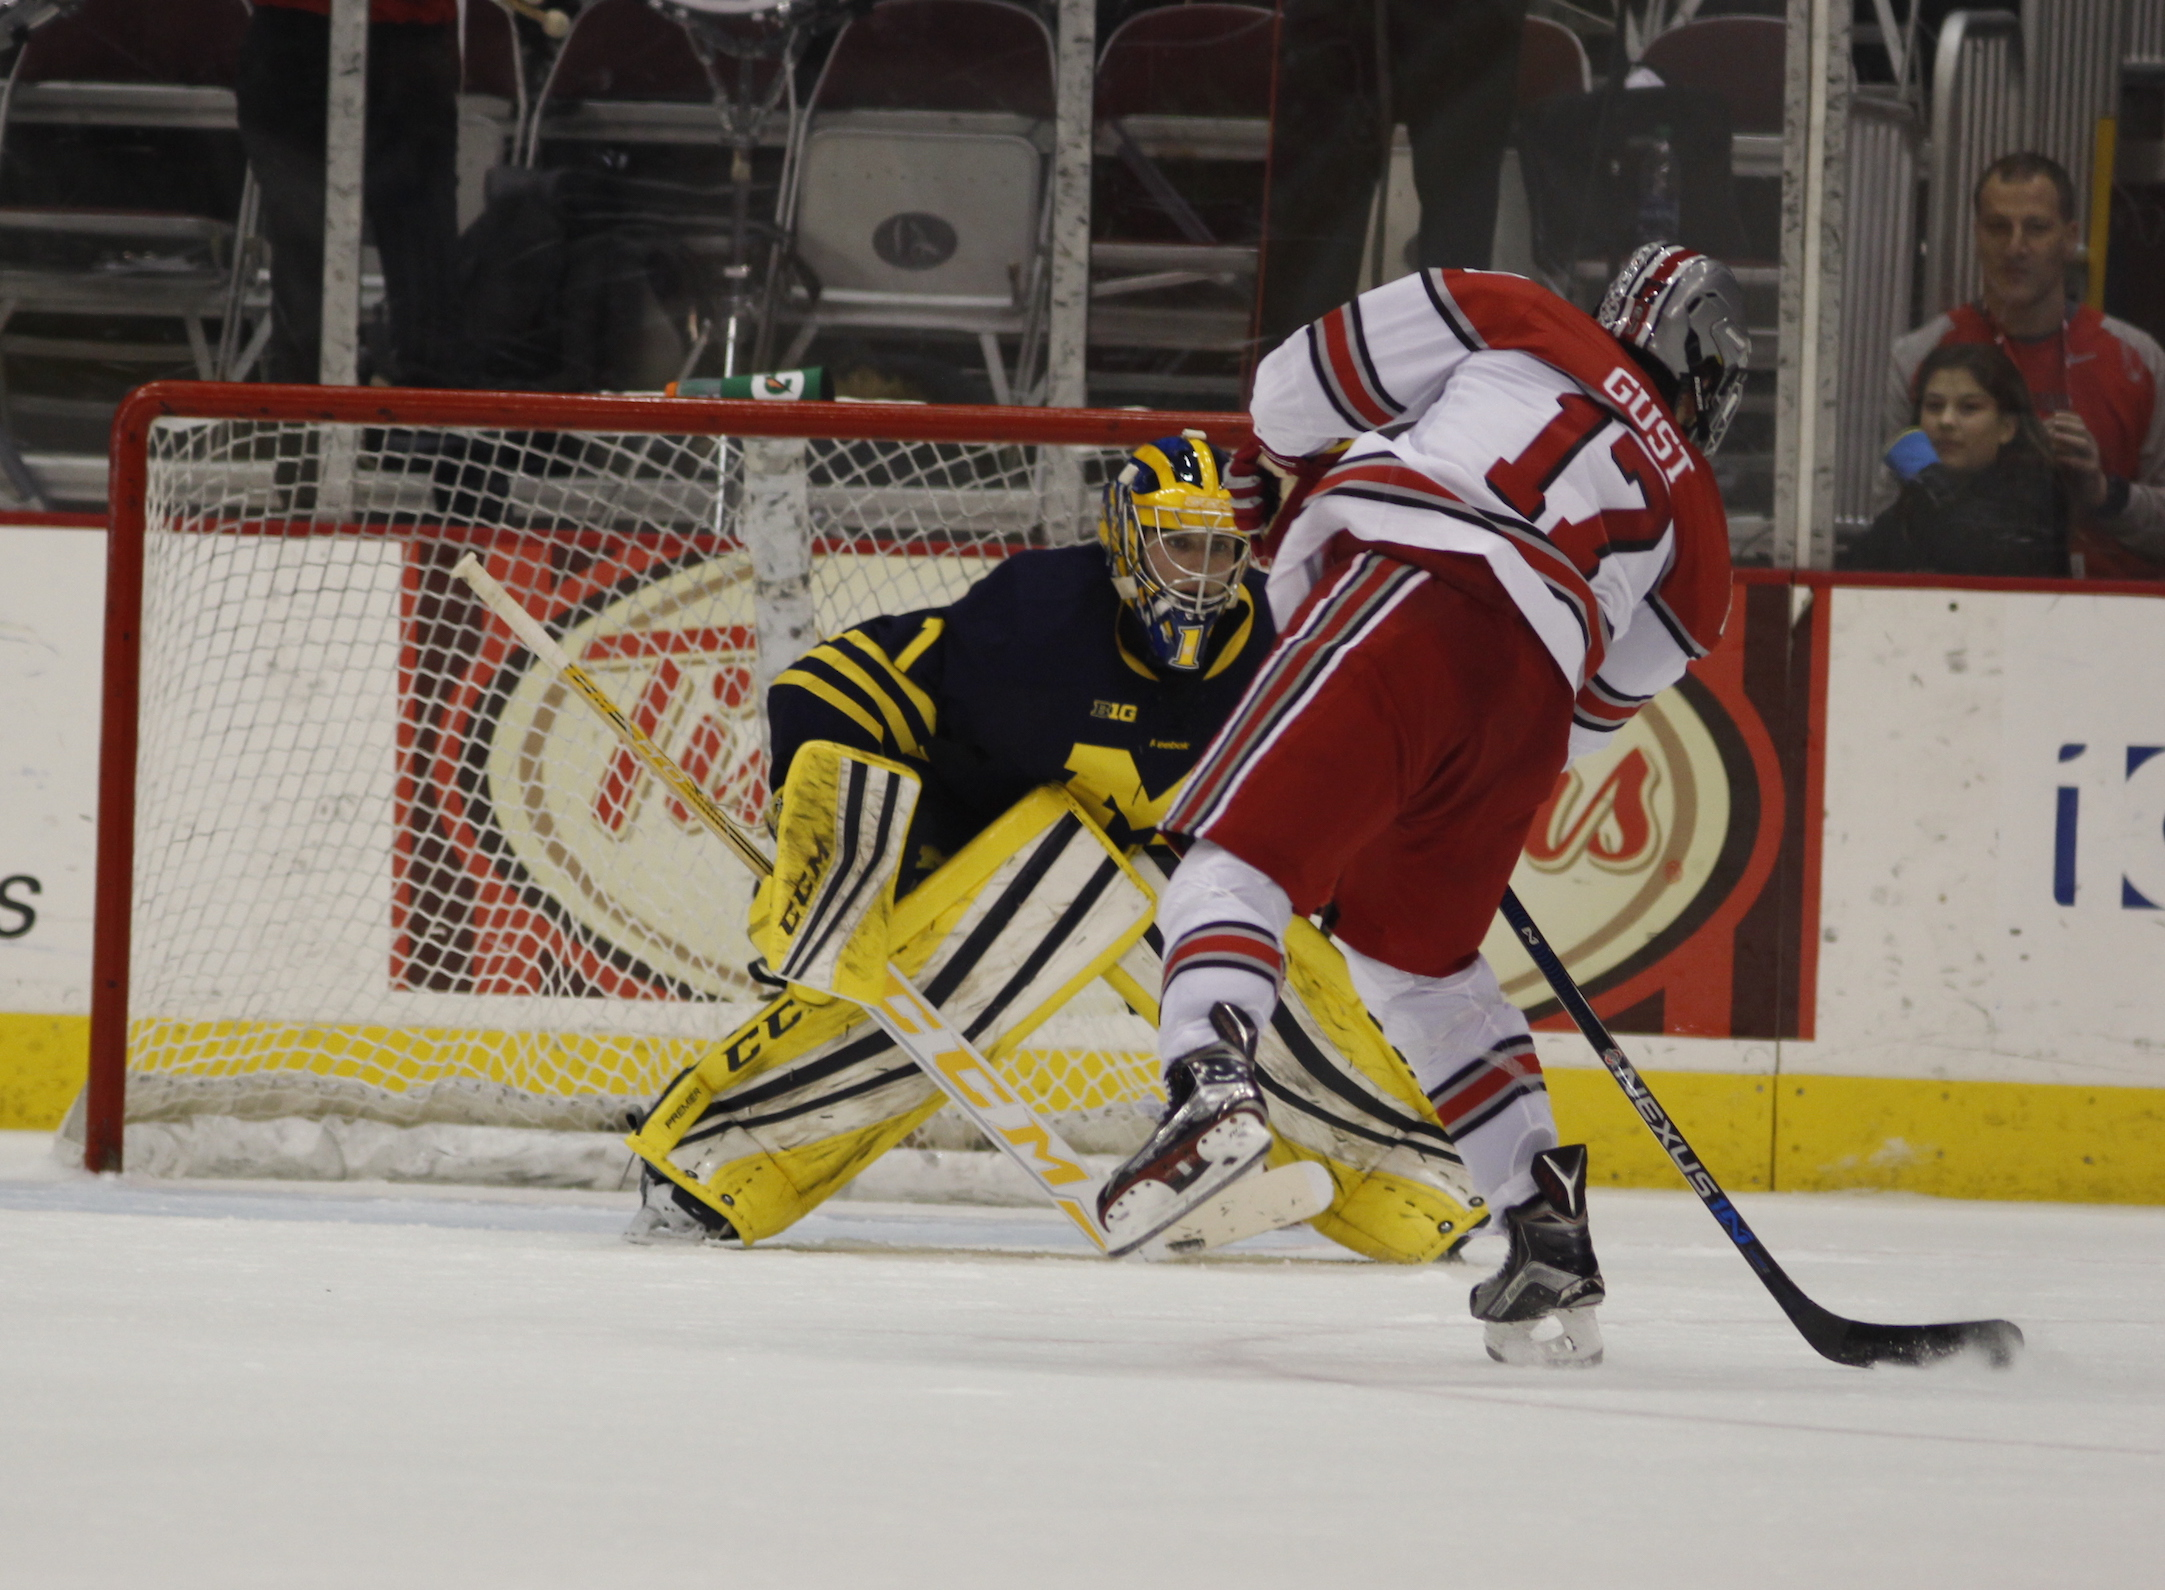 OSU junior forward David Gust attempts a shot during a shootout in a game against Michigan on Jan. 15 at the Schottenstein Center. OSU won in the shootout. Credit: Kevin Stankiewicz | Asst. Sports Editor